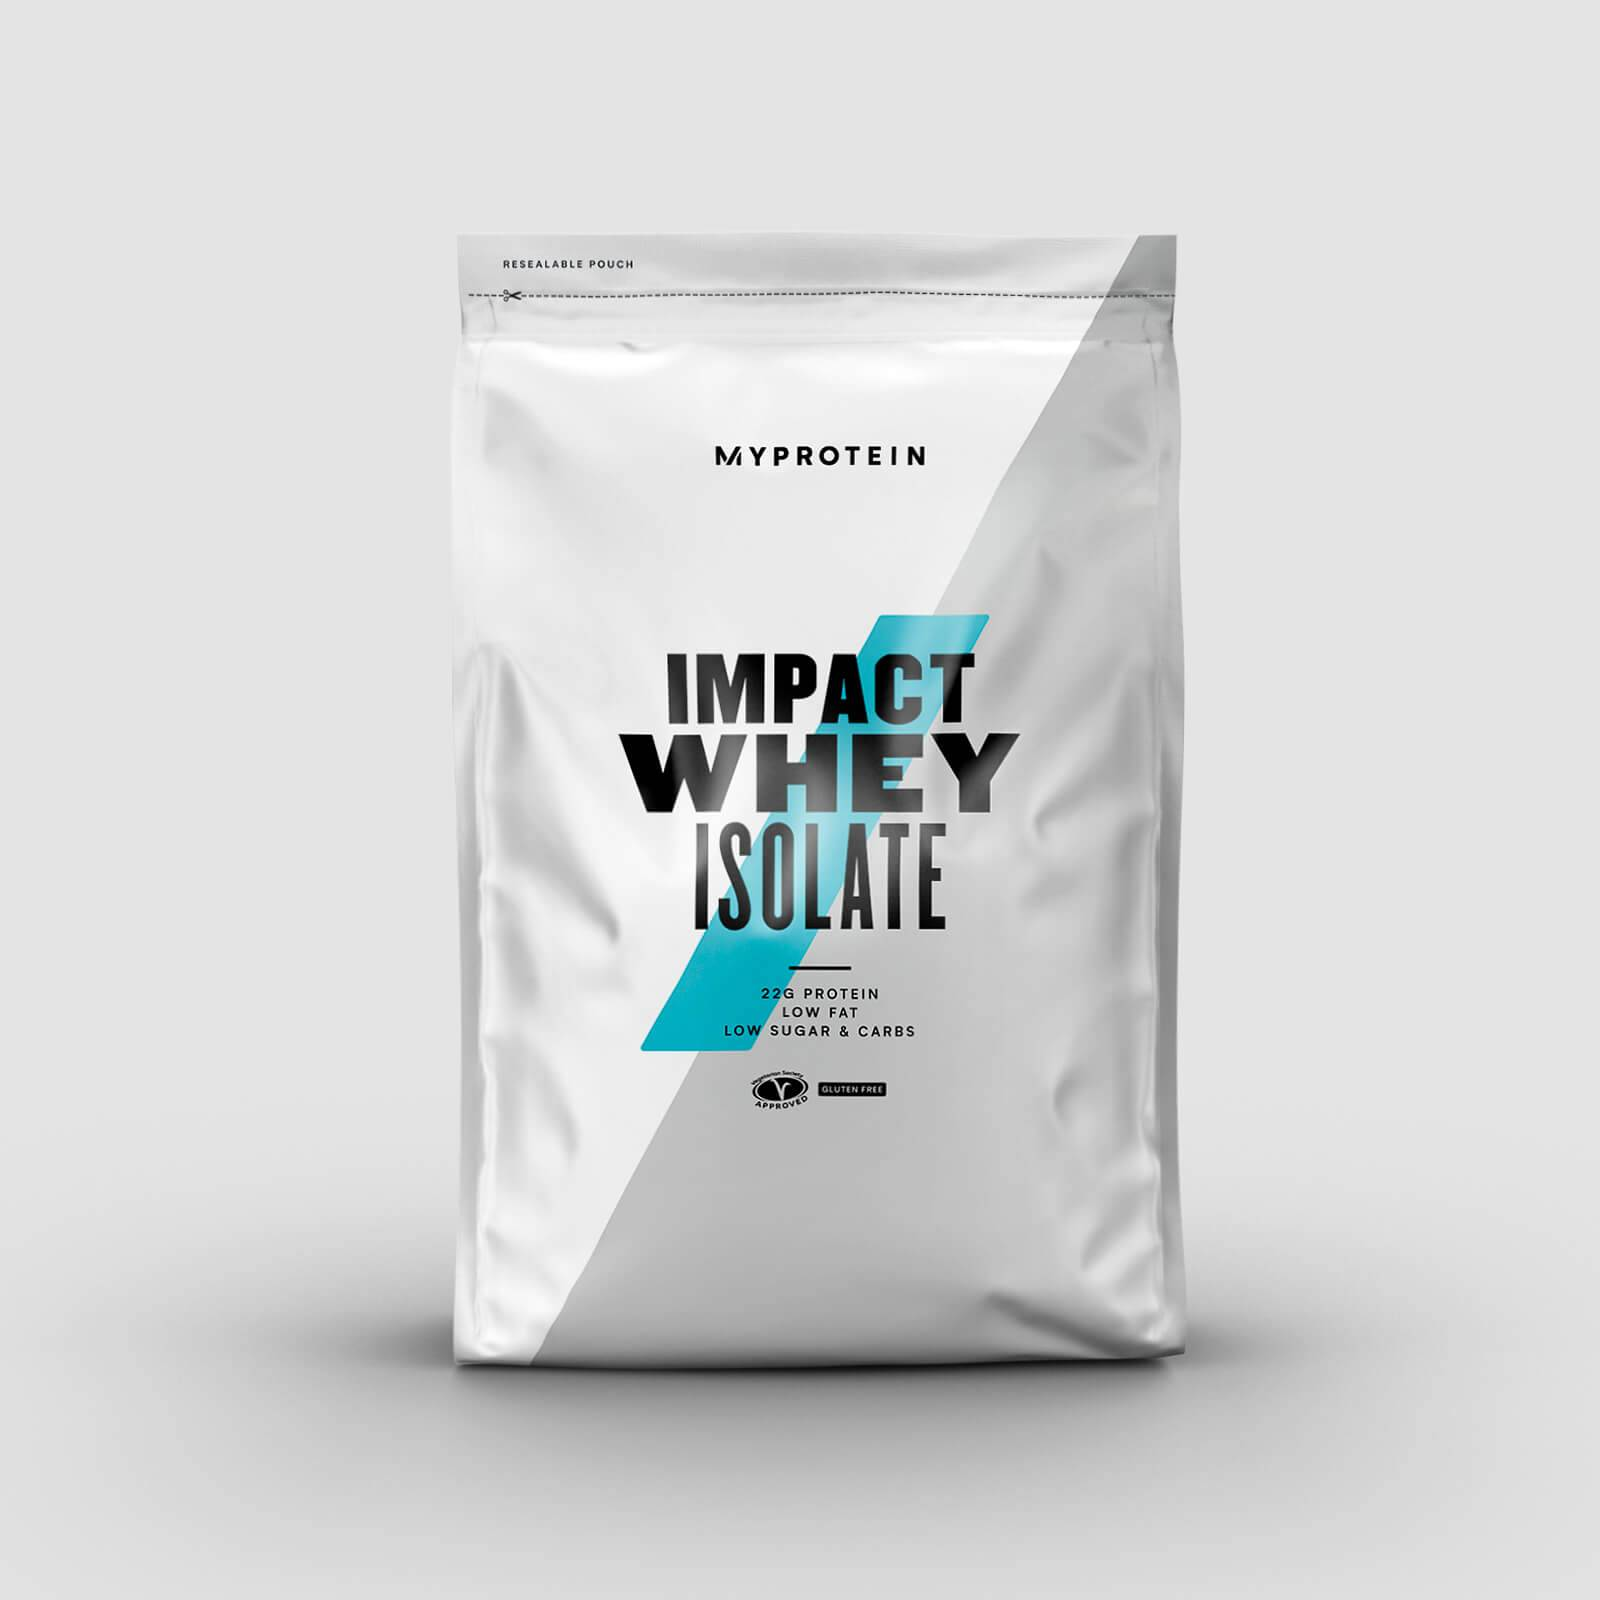 Myprotein Impact Whey Isolate - 1kg - Menthe chocolat